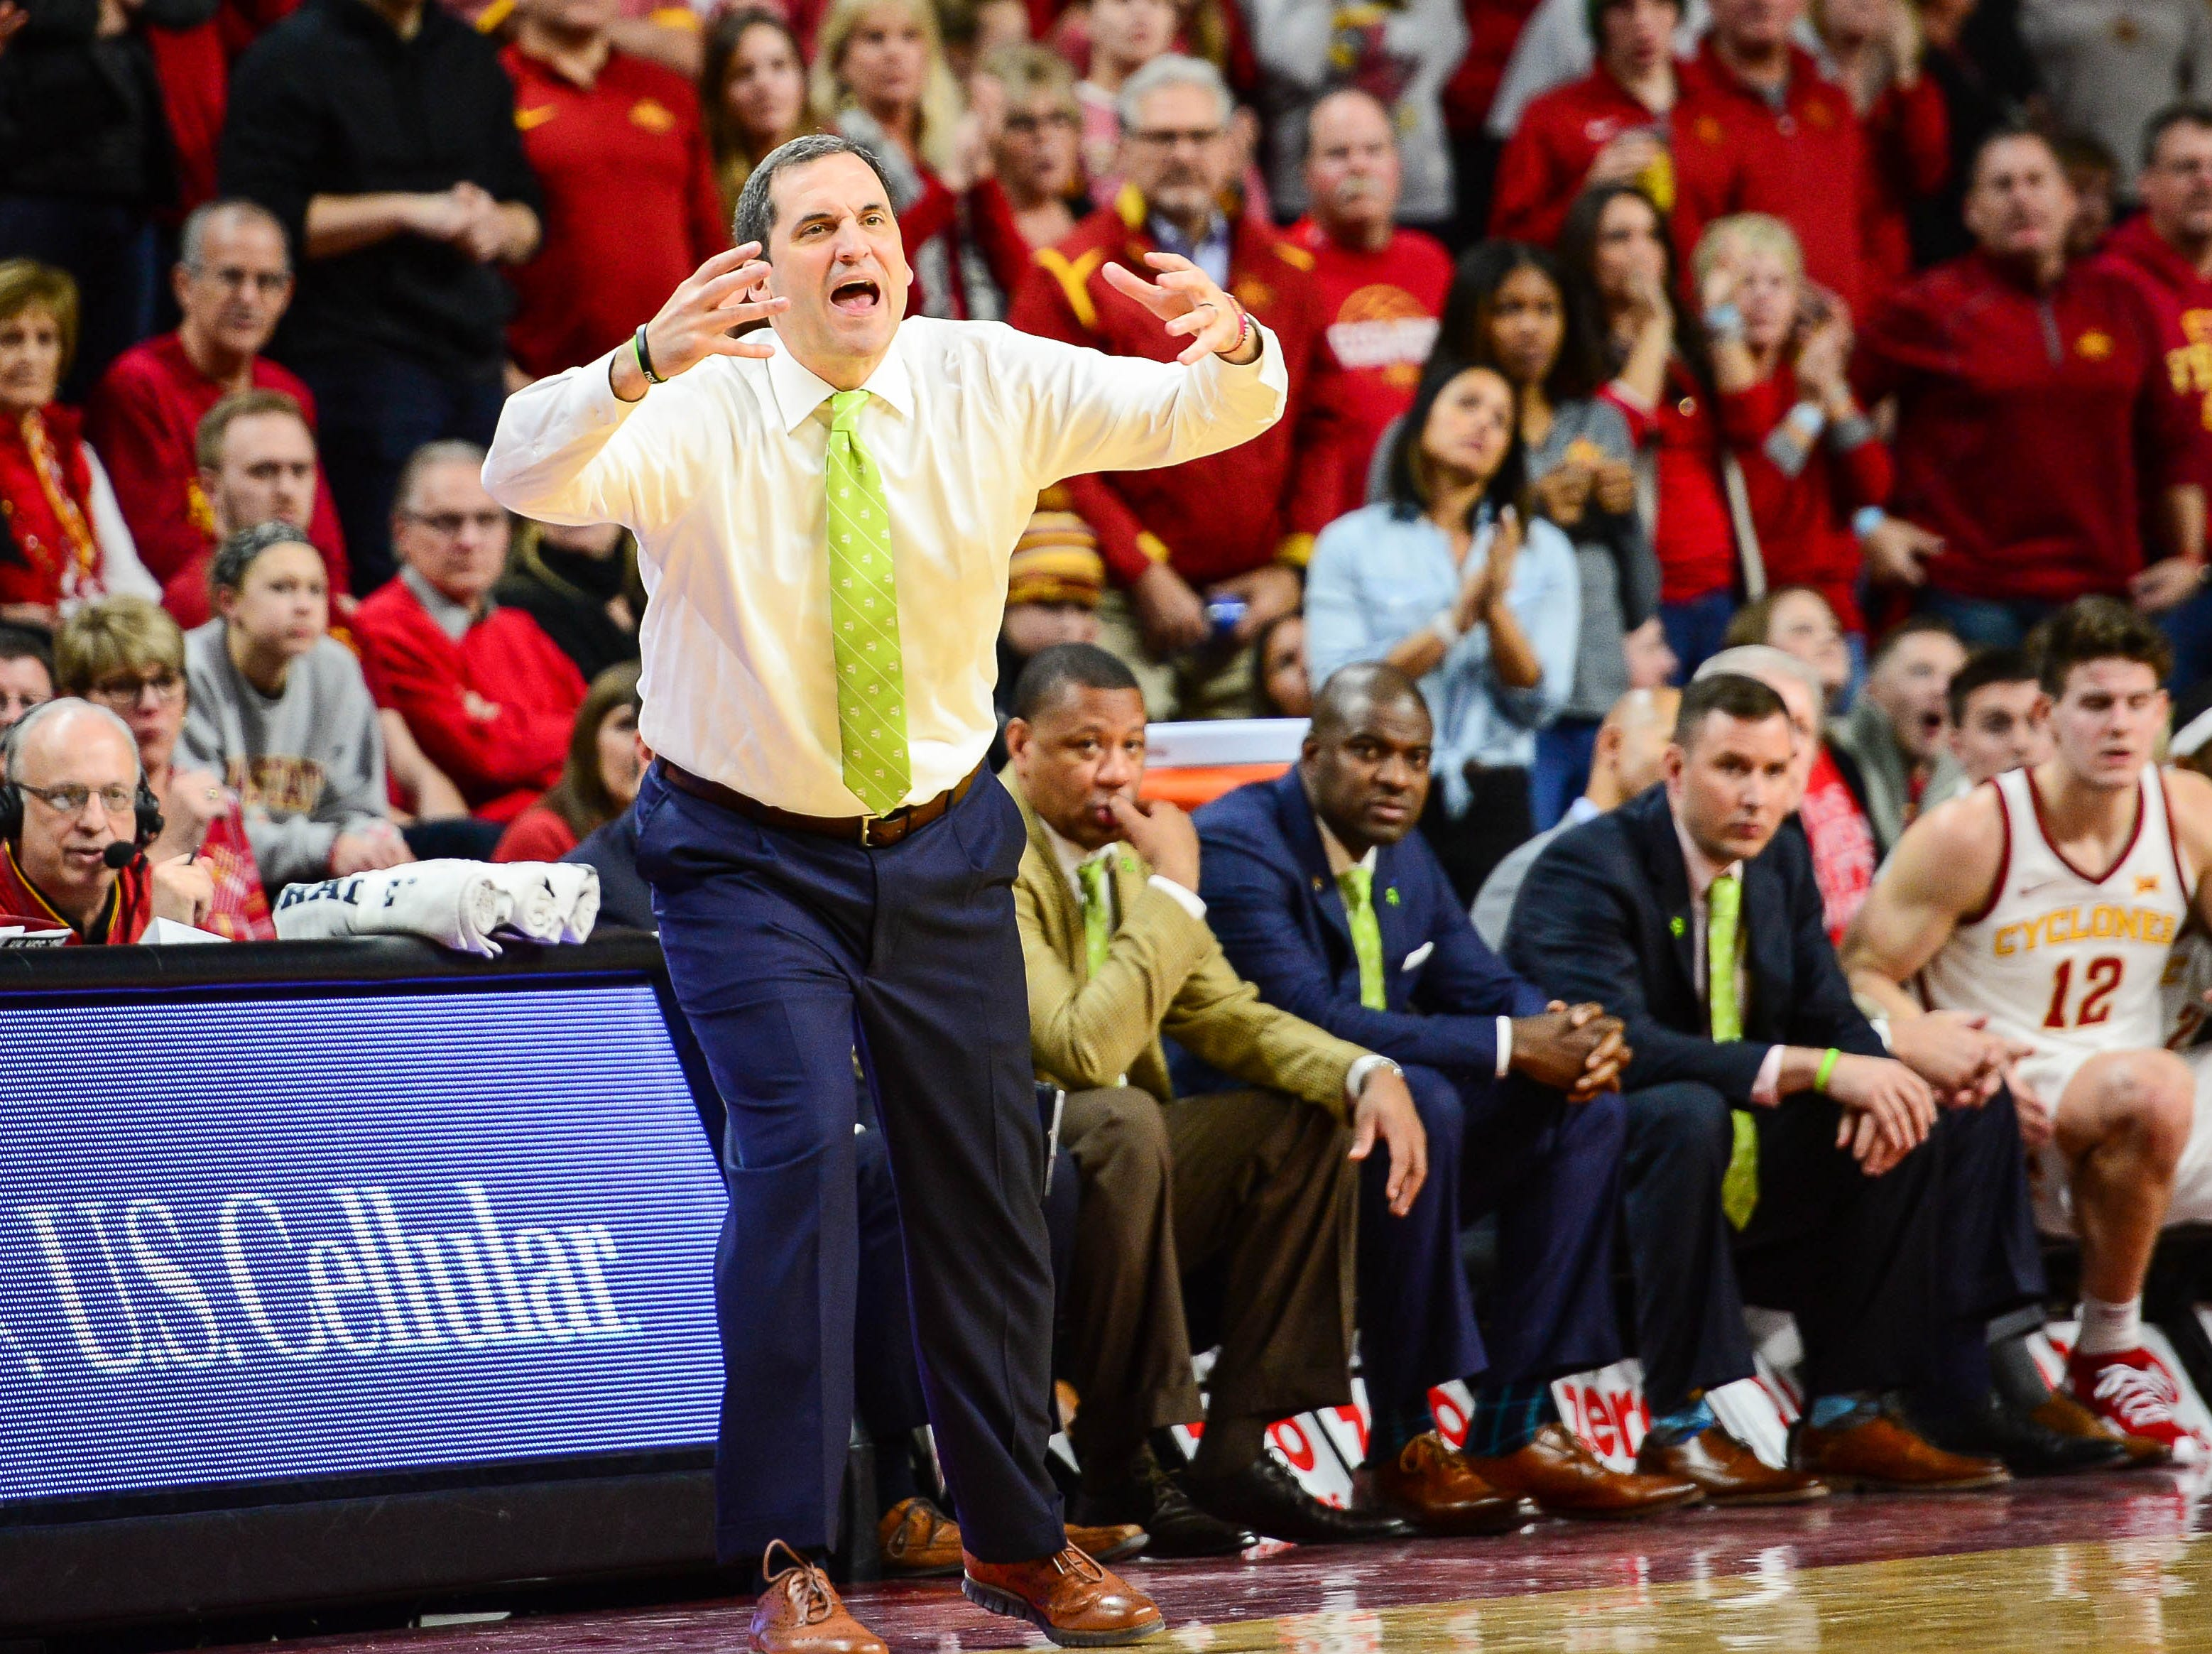 Iowa State coach Steve Prohm reacts during the second half of the Cyclones' game against TCU on Saturday, Feb. 9, 2019, at Hilton Coliseum in Ames.